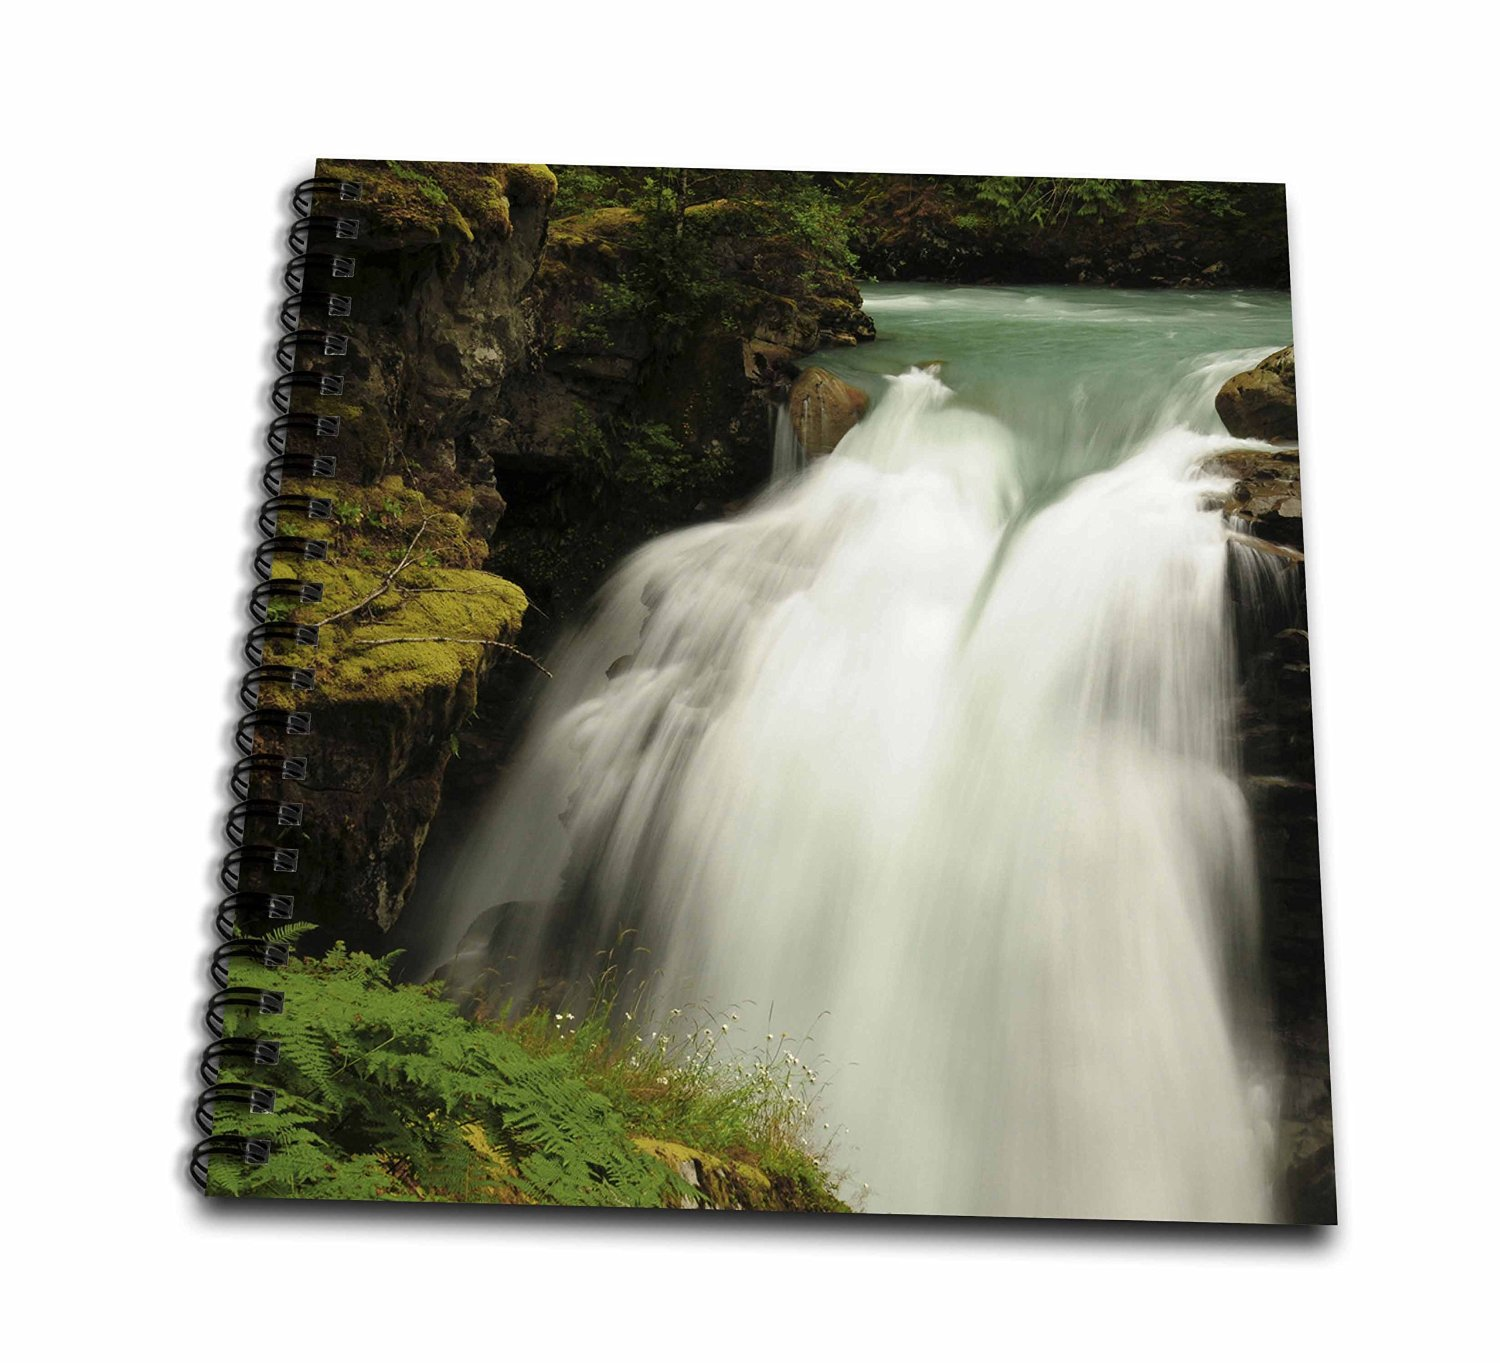 Danita Delimont - Waterfalls - Hooksack Waterfalls, Washington, USA - US48 MHE0033 - Michel Hersen - Memory Book 12 x 12 inch (db_148376_2)